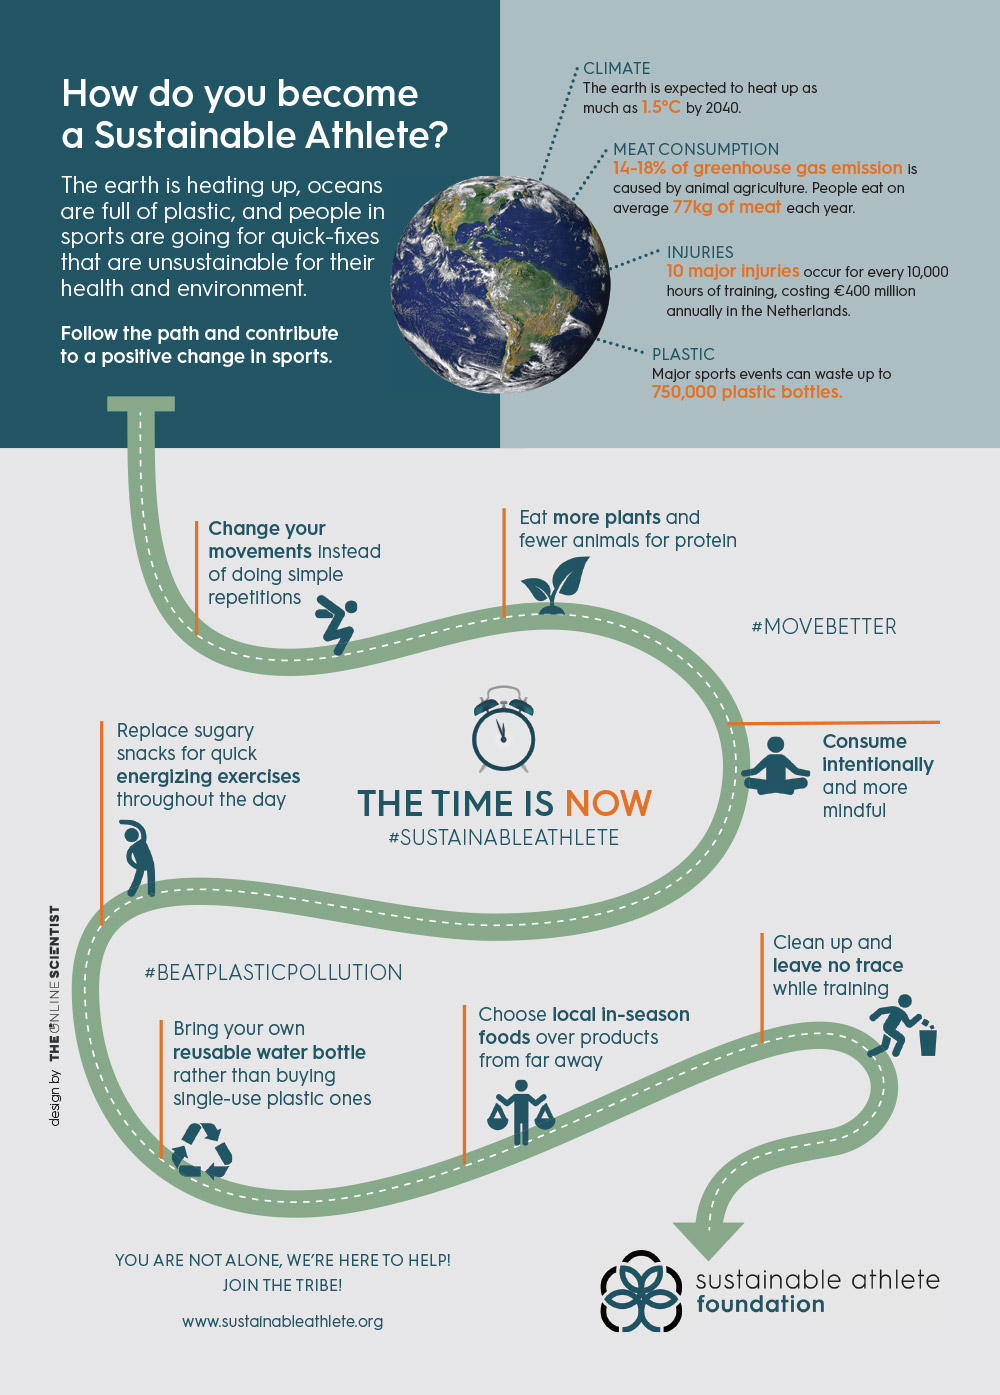 Infographic Sustainable Athlete Foundation by The Online Scientist